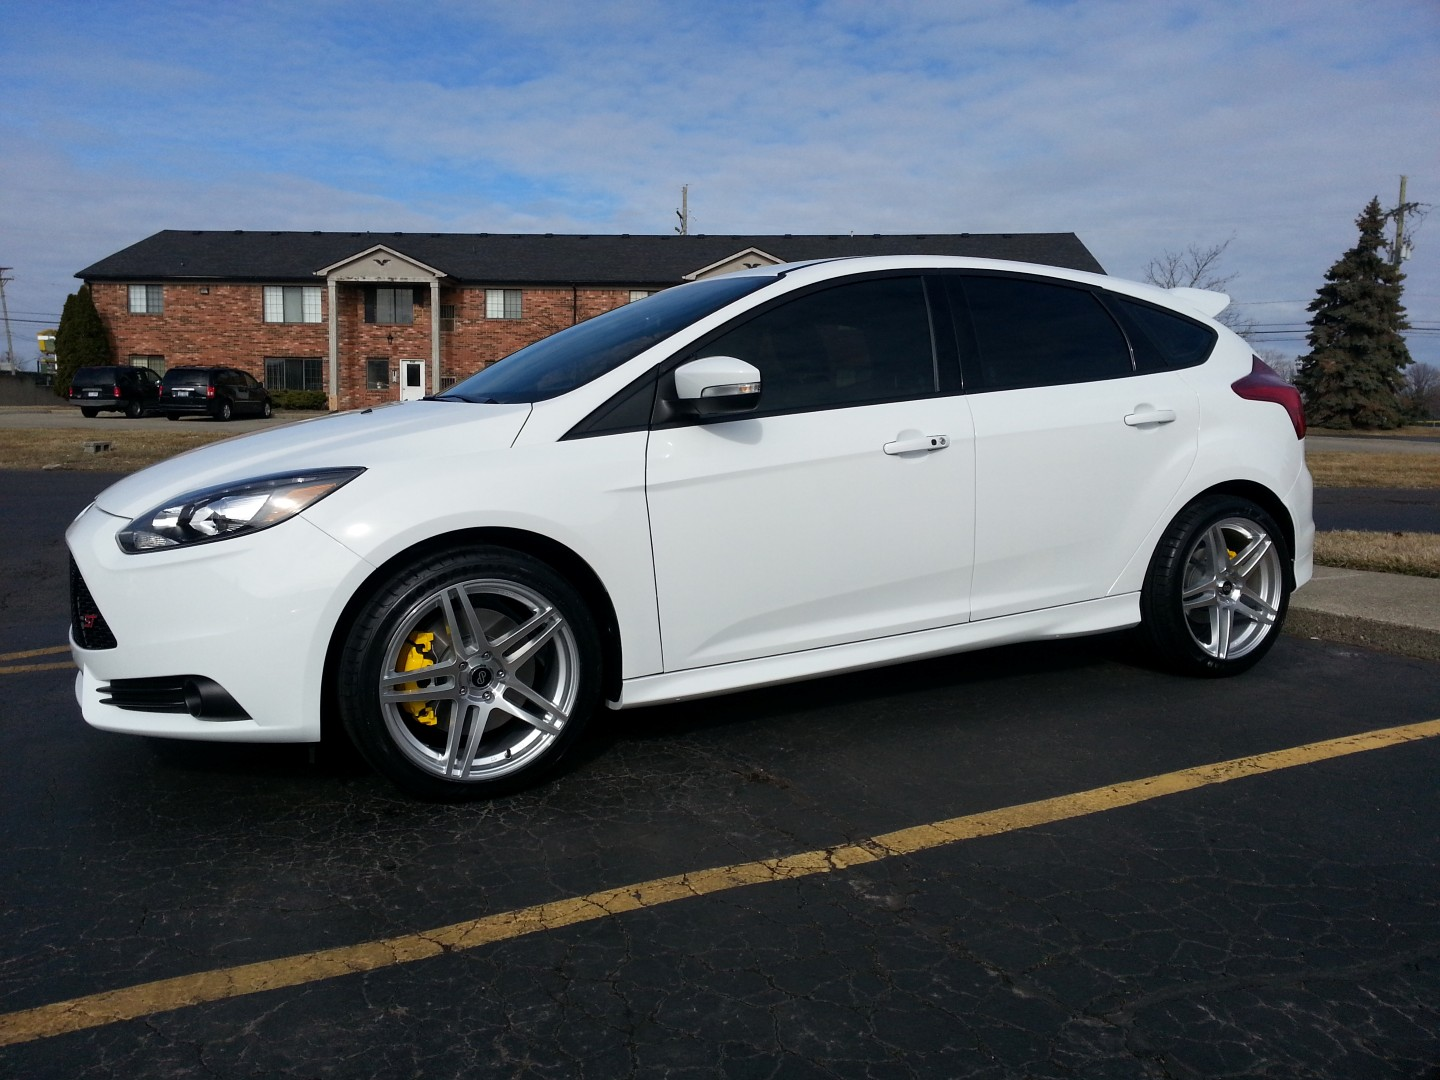 Ford Focus Wheels And Tires >> Enkei RSF5 (pics as requested)